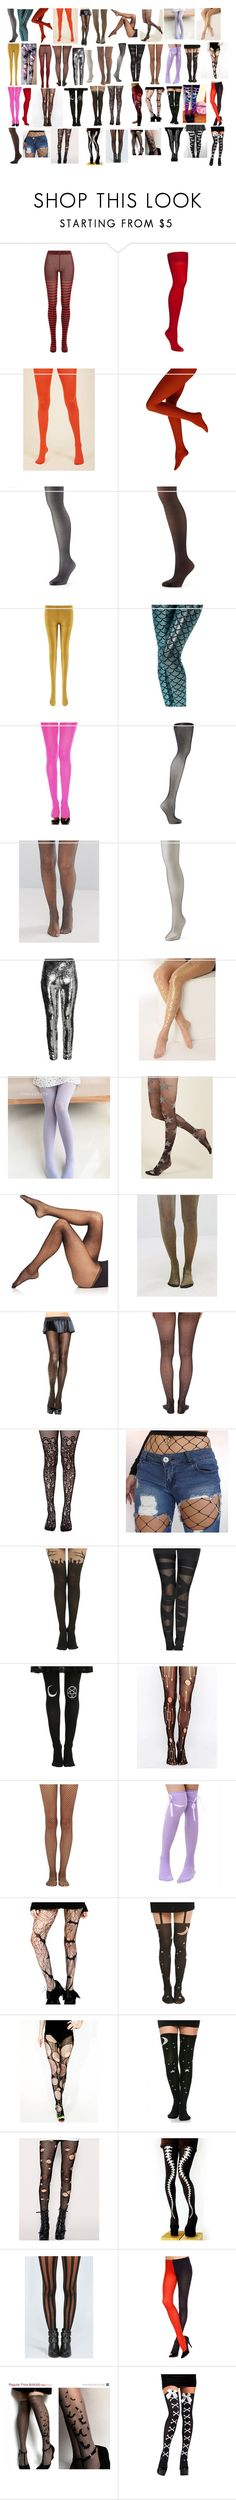 """Tights 2"" by spellcasters ❤ liked on Polyvore featuring Sonia Rykiel, Hanes, Falke, Gipsy, Berkshire, H&M, Commando, ASOS, Leg Avenue and Wolford"